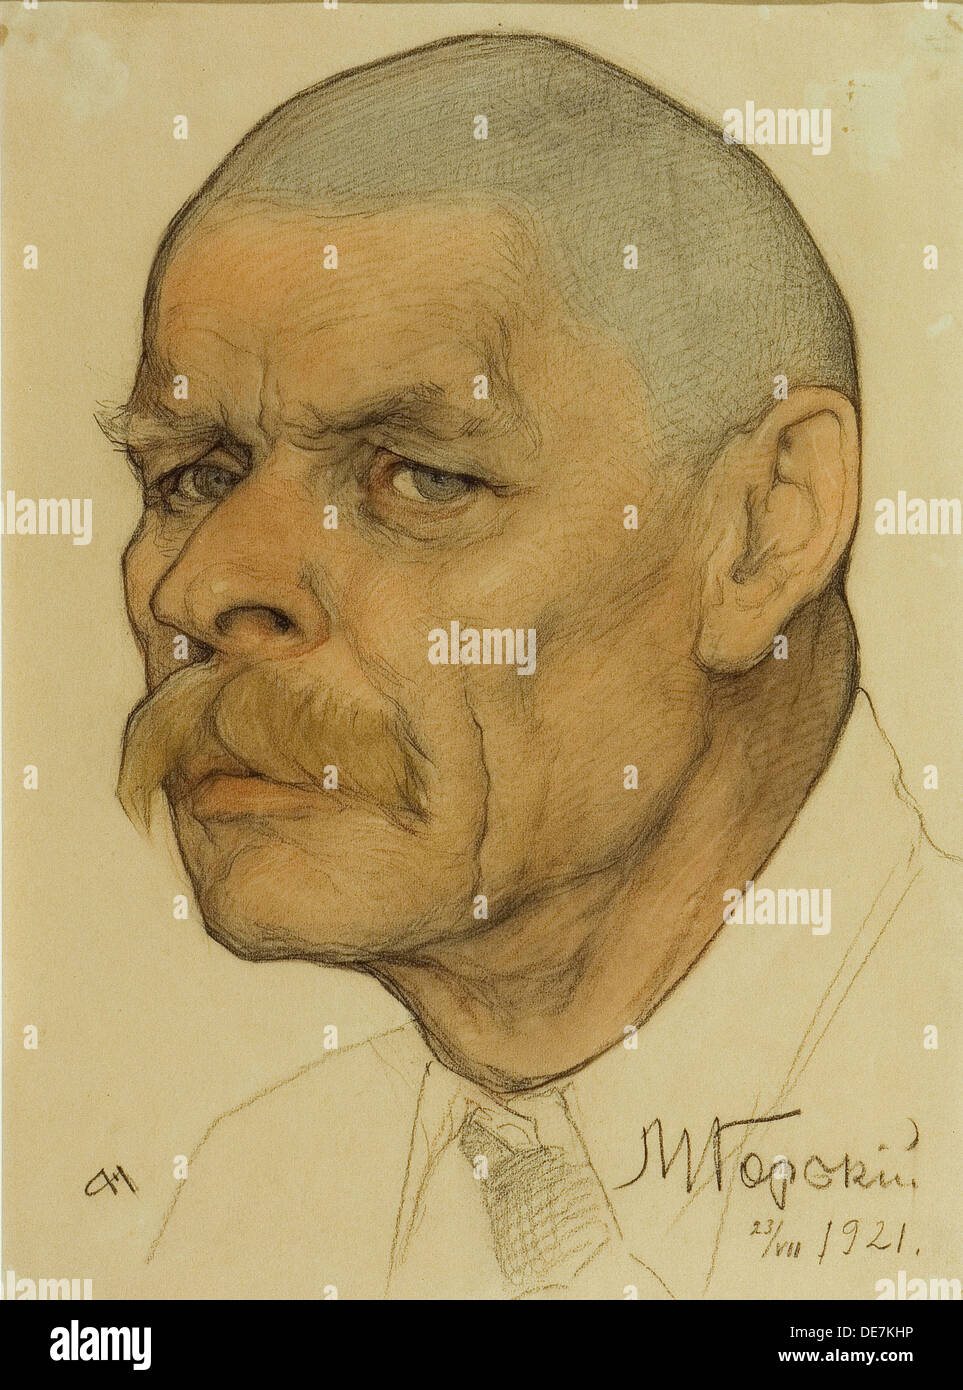 Portrait of the author Maxim Gorky (1868-1939), 1921. Artist: Andreev, Nikolai Andreevich (1873-1932) - Stock Image